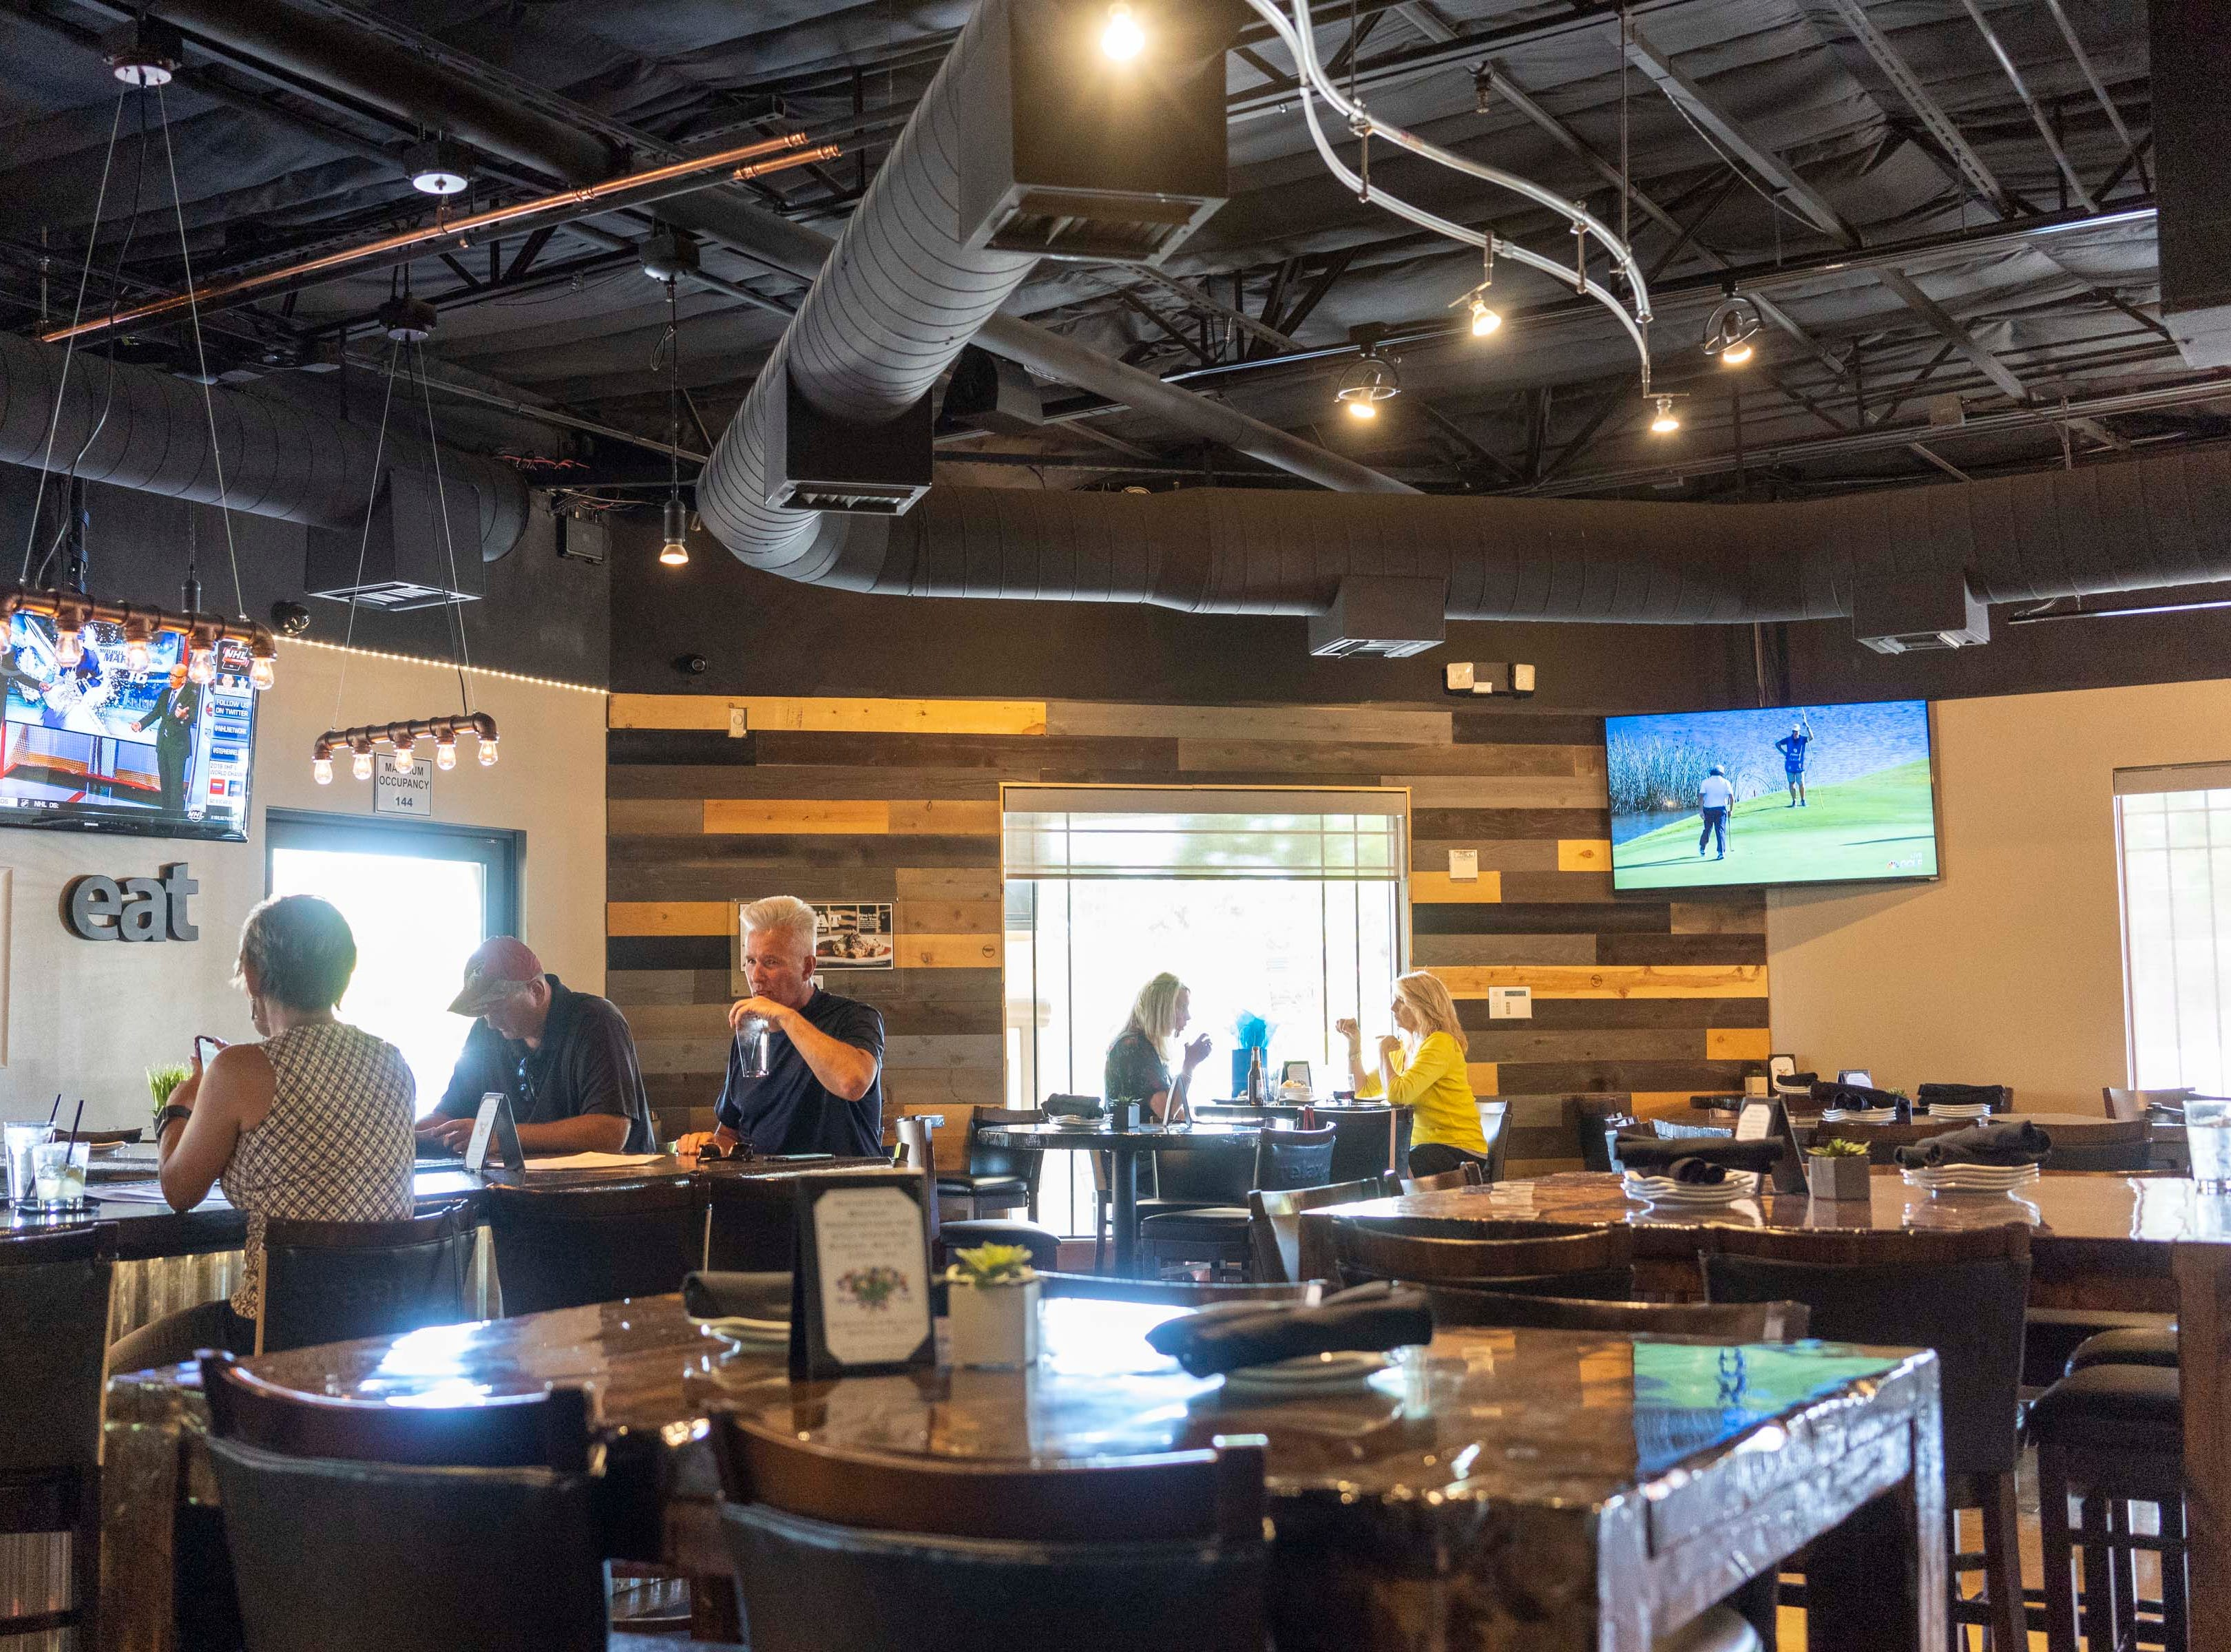 Urban Margarita specializes in Mexican cuisine with influences from David Borrego's family's New Mexico roots, and it does just that with a combination of unstuffy sleek furnishings and elevated takes on Southwestern comfort food.